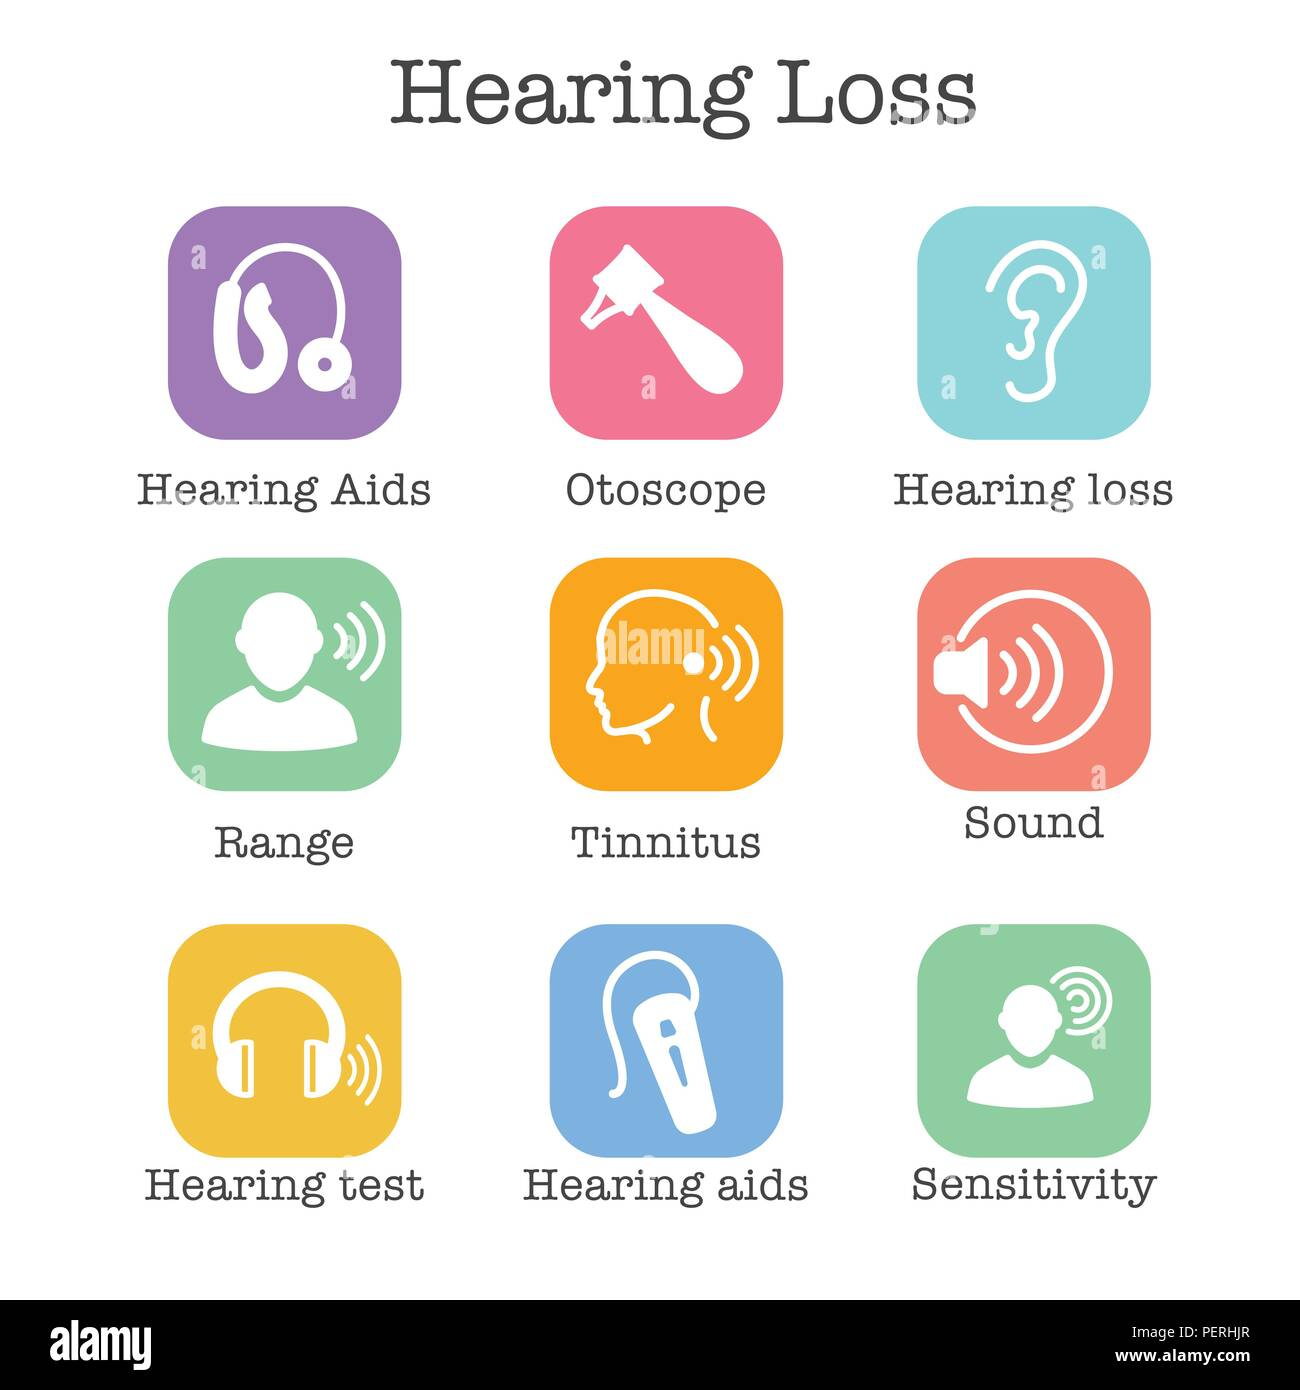 Hearing Aid or loss with Sound Wave Images Icon Set - Stock Image